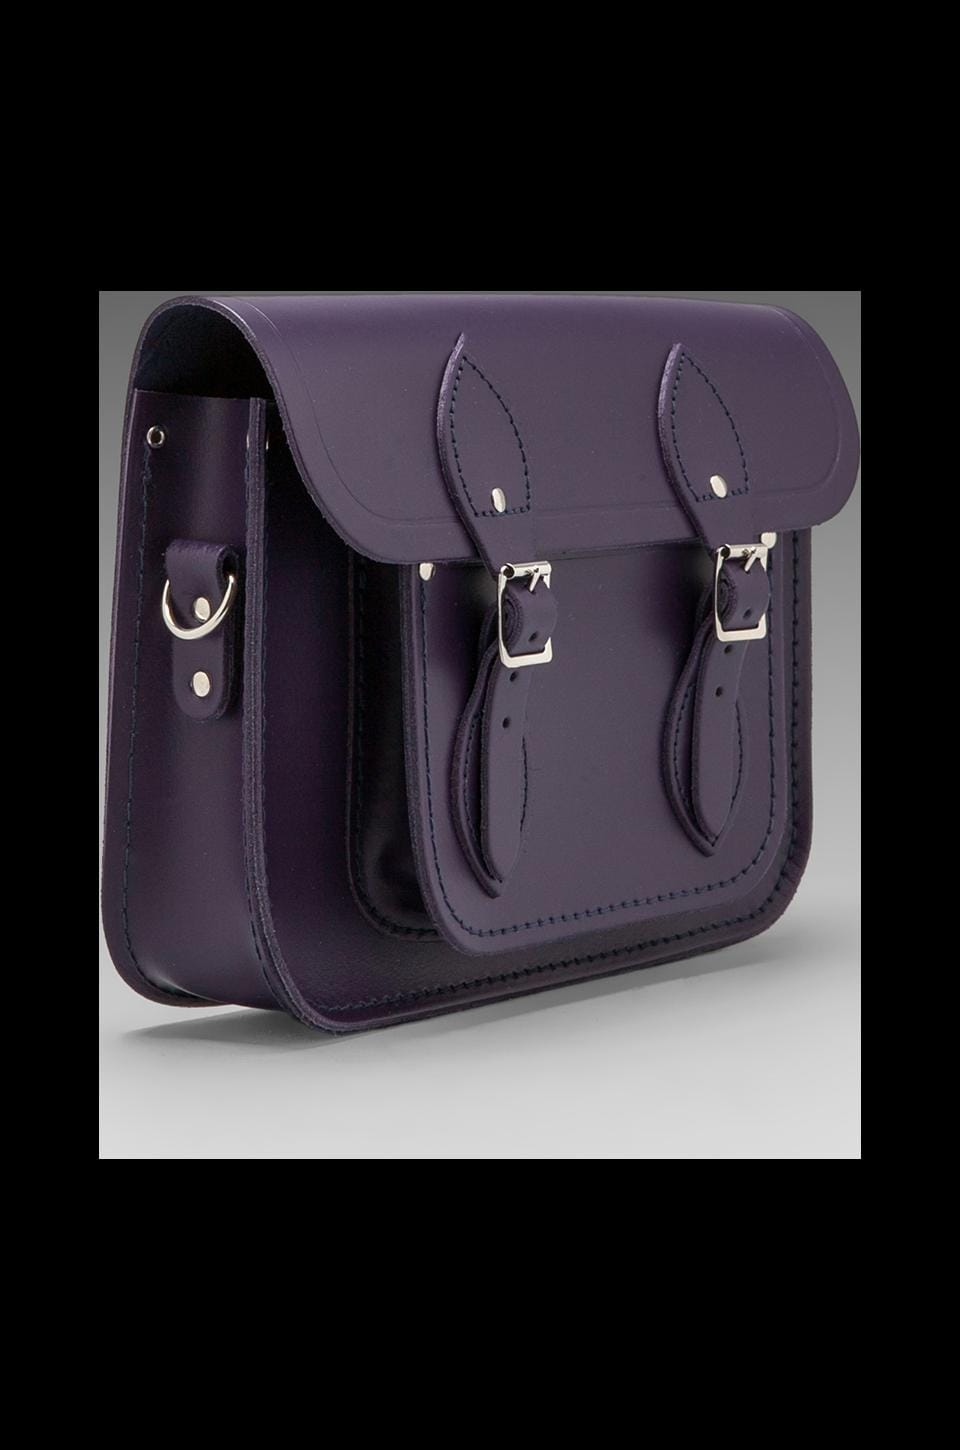 "The Cambridge Satchel Company Detachable Short/Long Strap Satchel 11"" in Gothic"